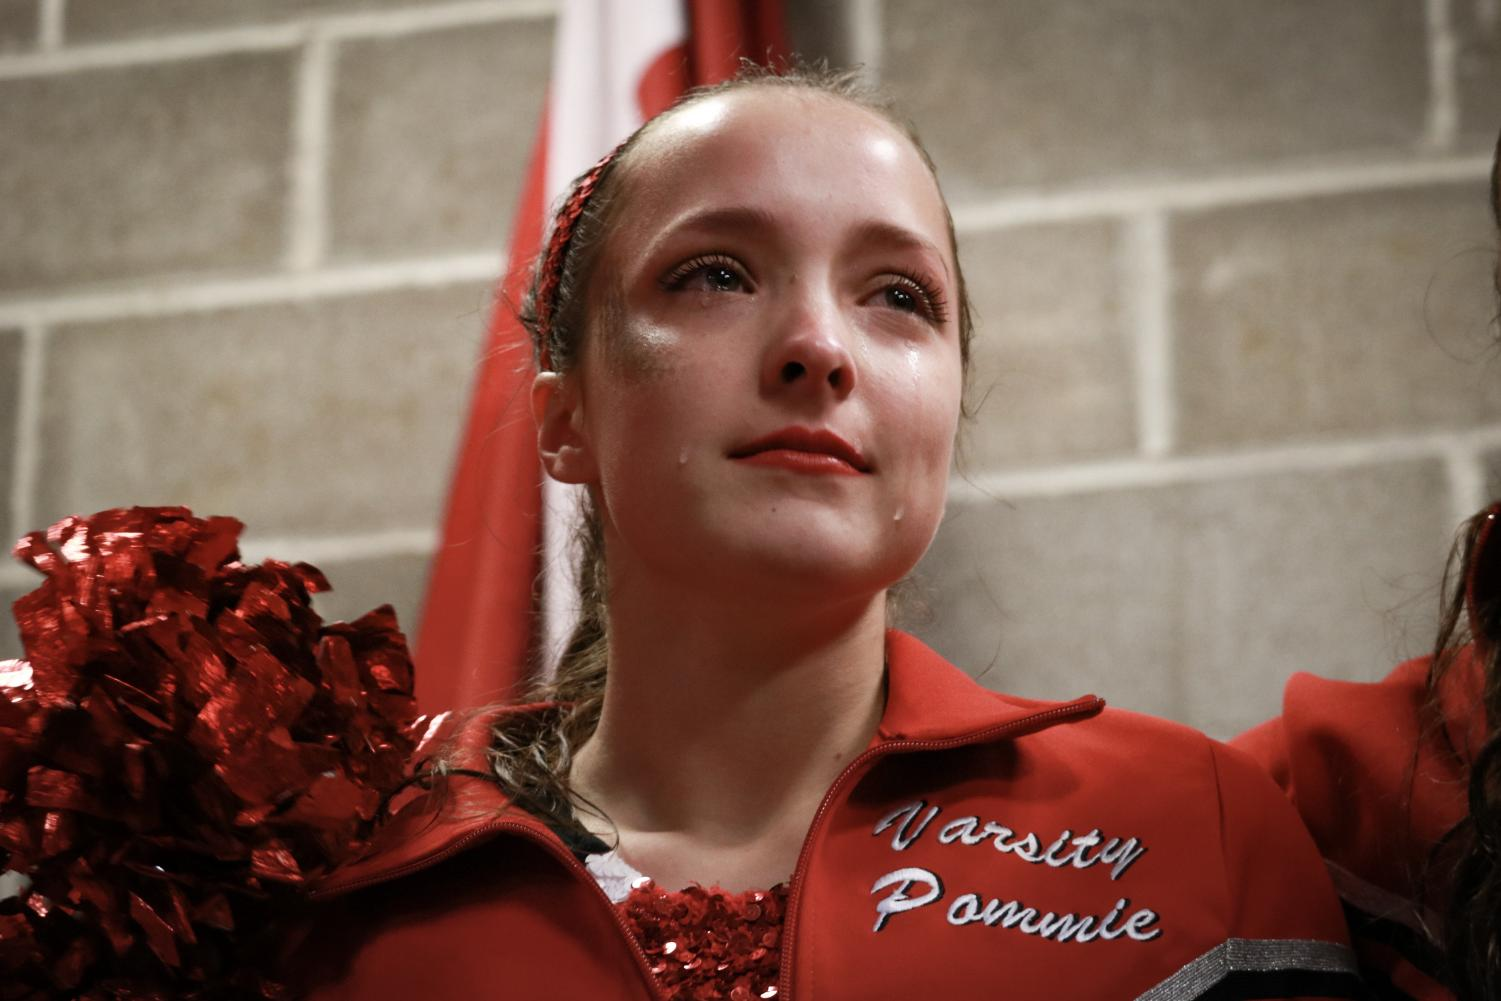 Giving+a+pep+talk+to+her+team%2C+Maria+Ginocchio%2C+senior%2C+cries+before+her+final+home+football+game+dancing+as+a+KHS+pommie+Oct.+26